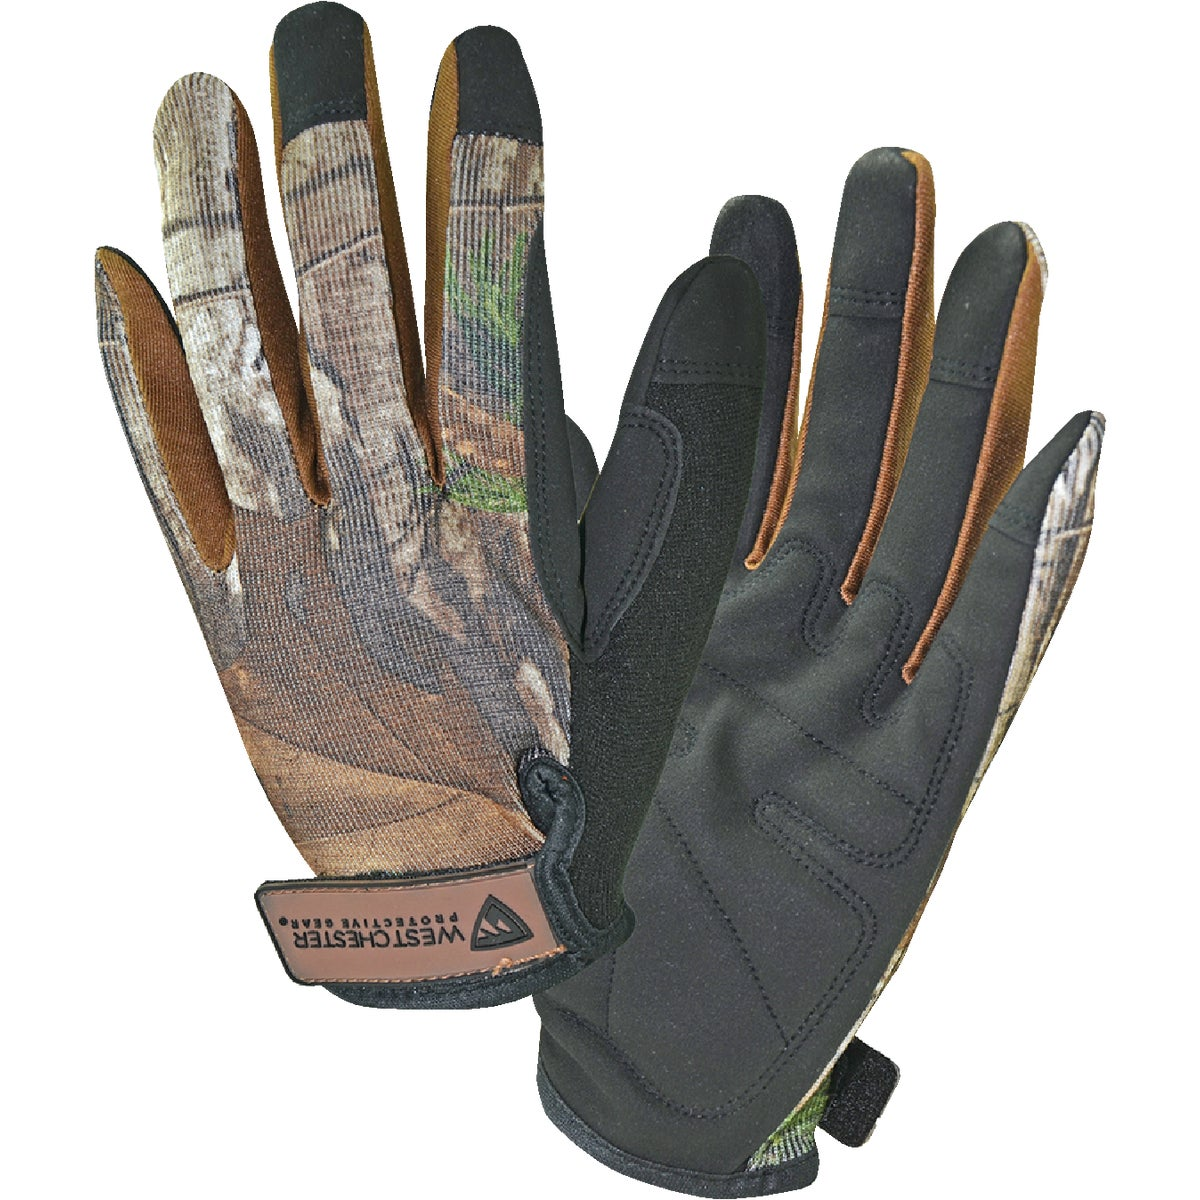 LRG CAMO BCKCNTRY GLOVE - M125L by Custom Leathercraft